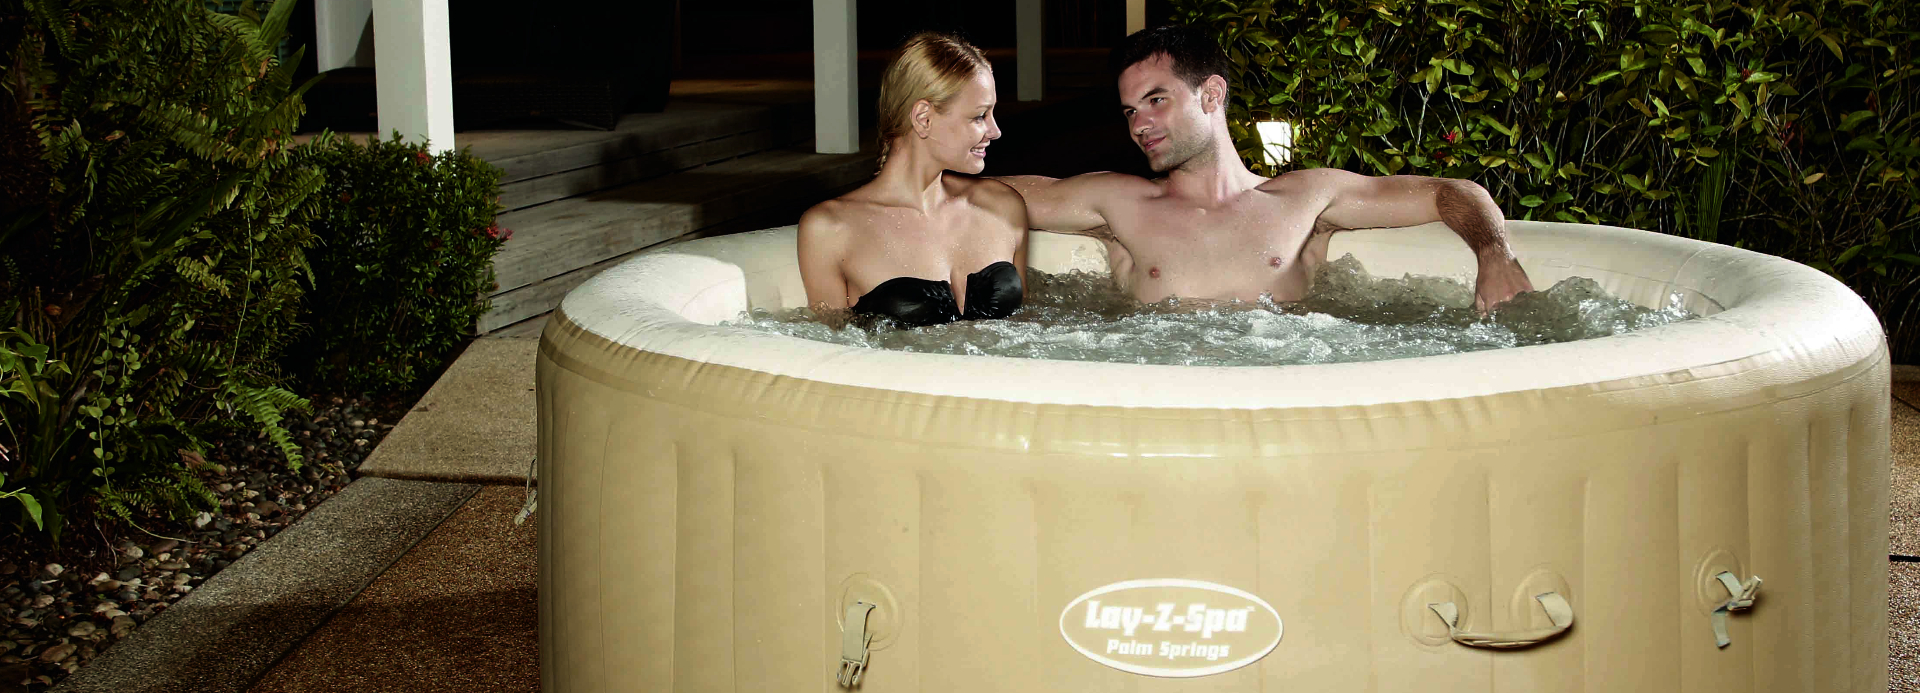 Pools Hot Tubs Amp Pool Supplies Patio Lawn Amp Garden